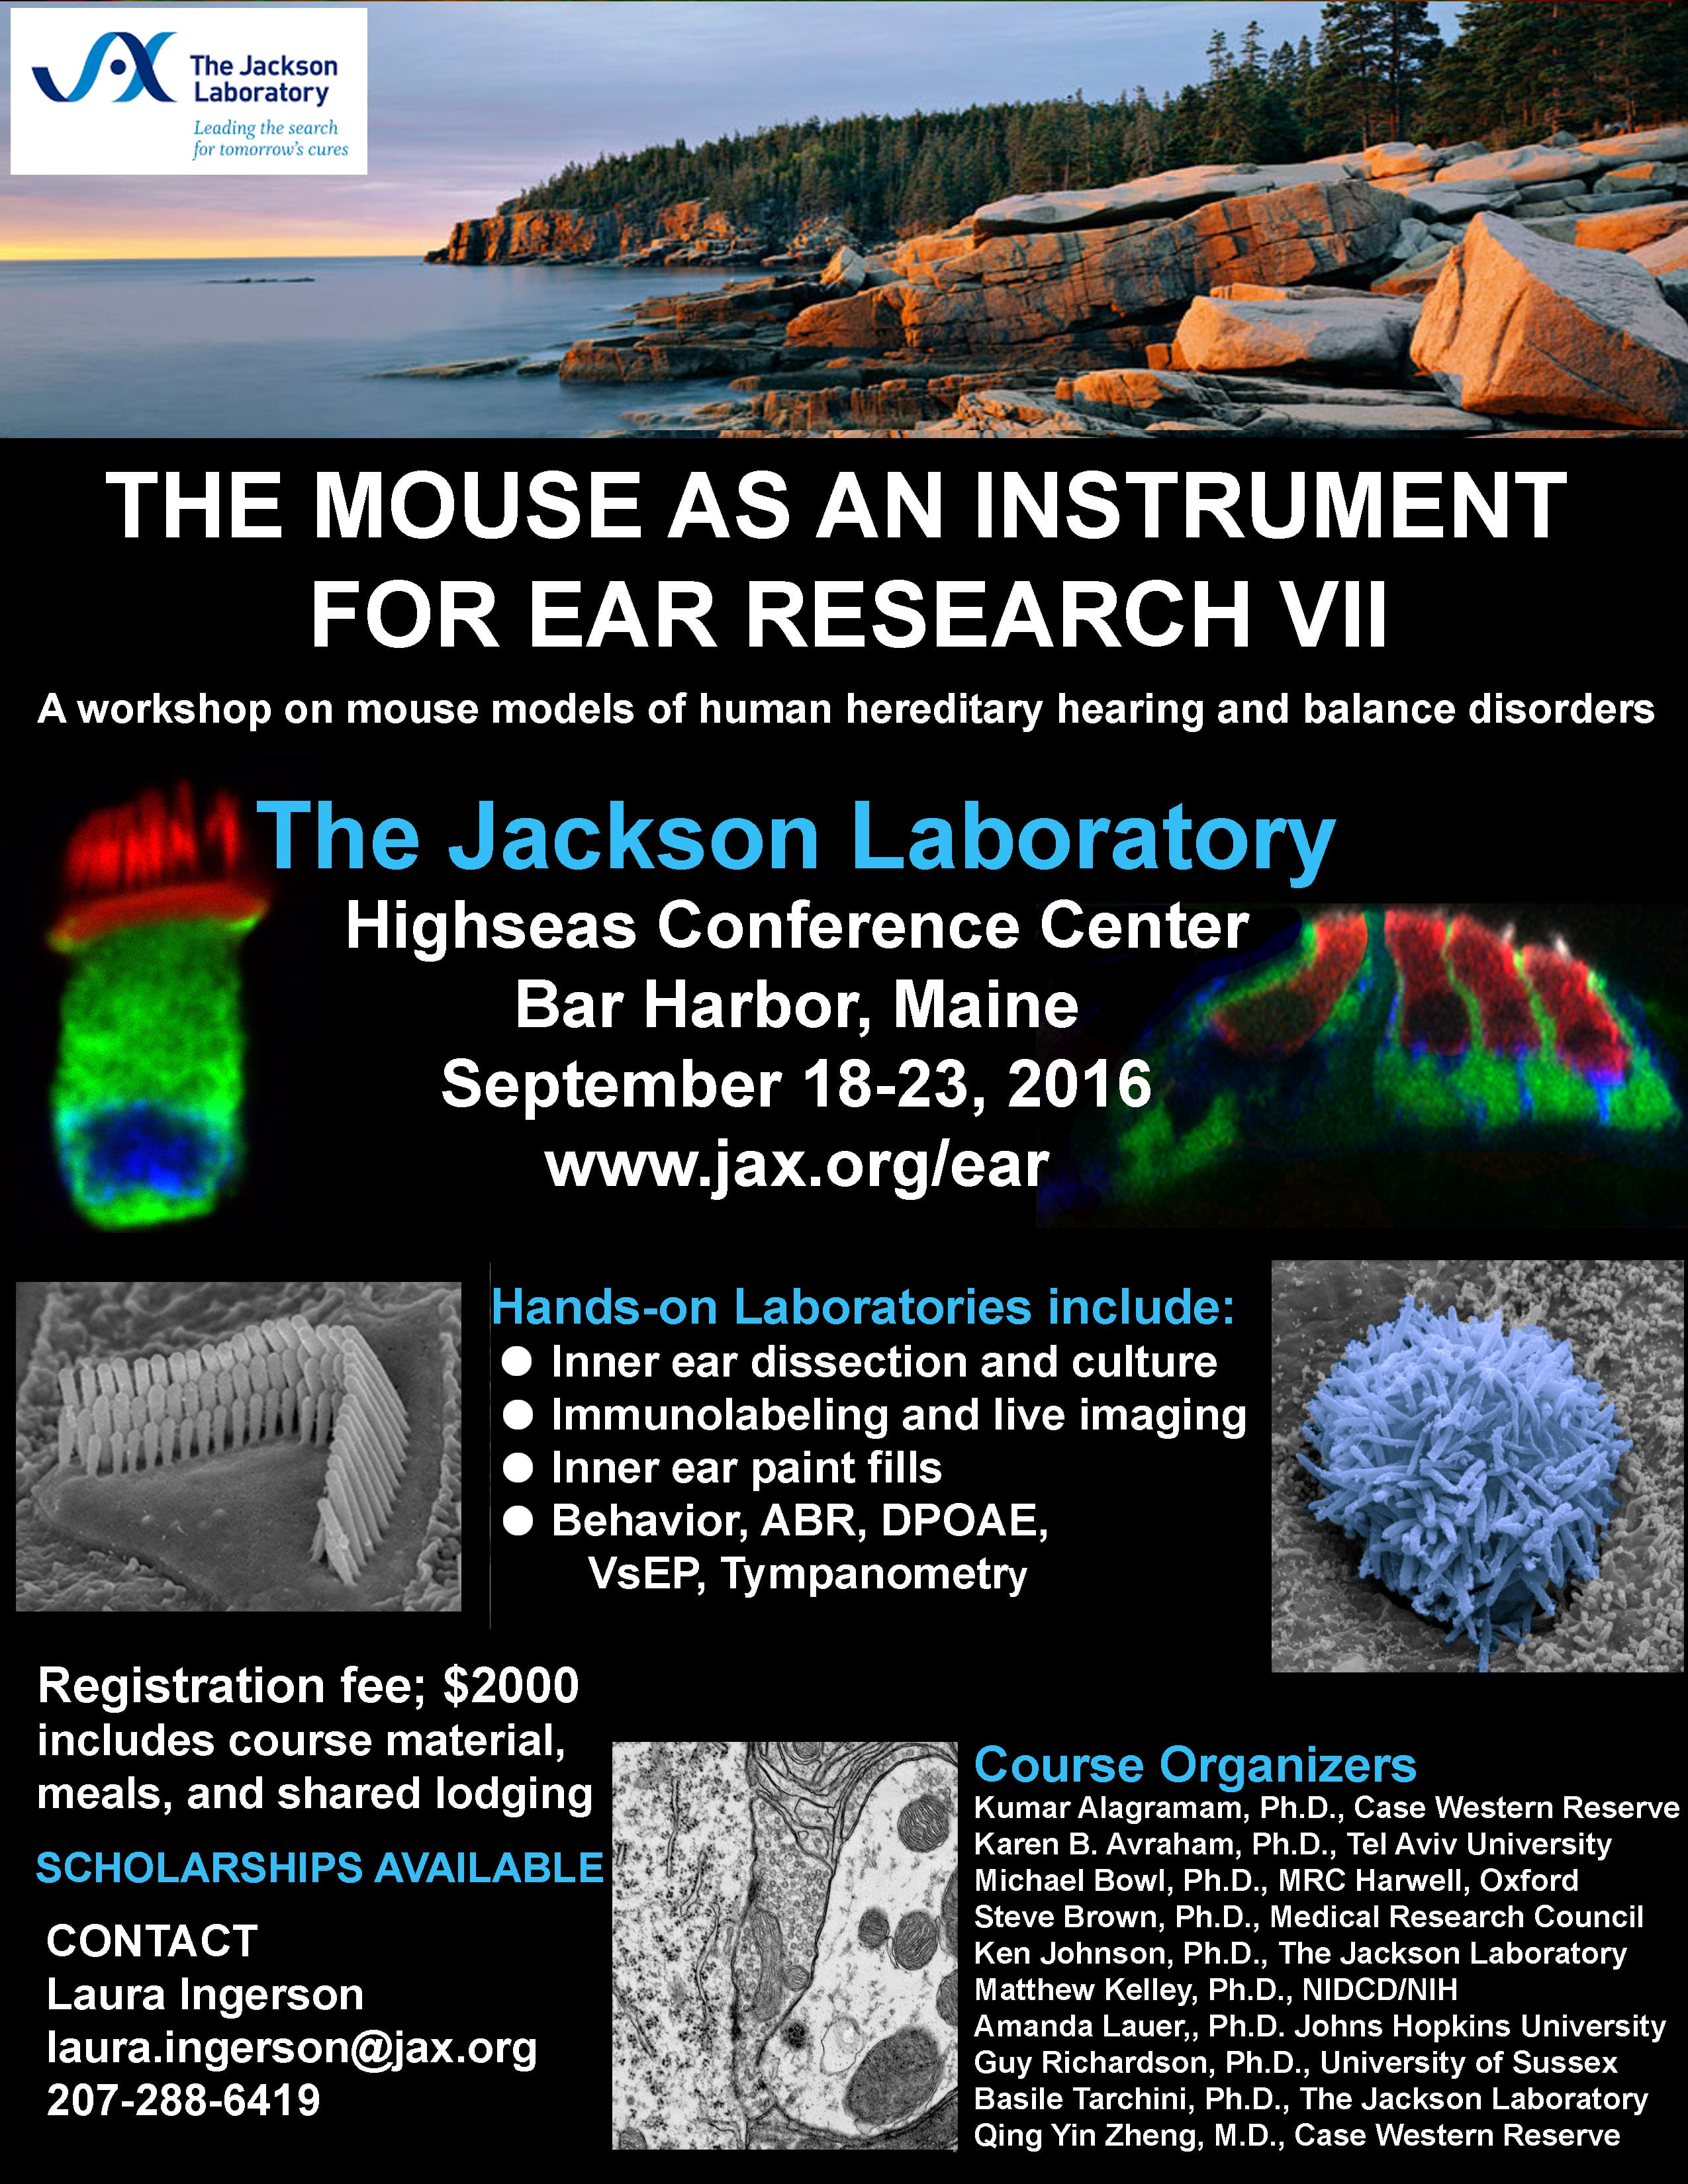 The Mouse as an Instrument for Ear Research VII - The Jackson Laboratory Workshop